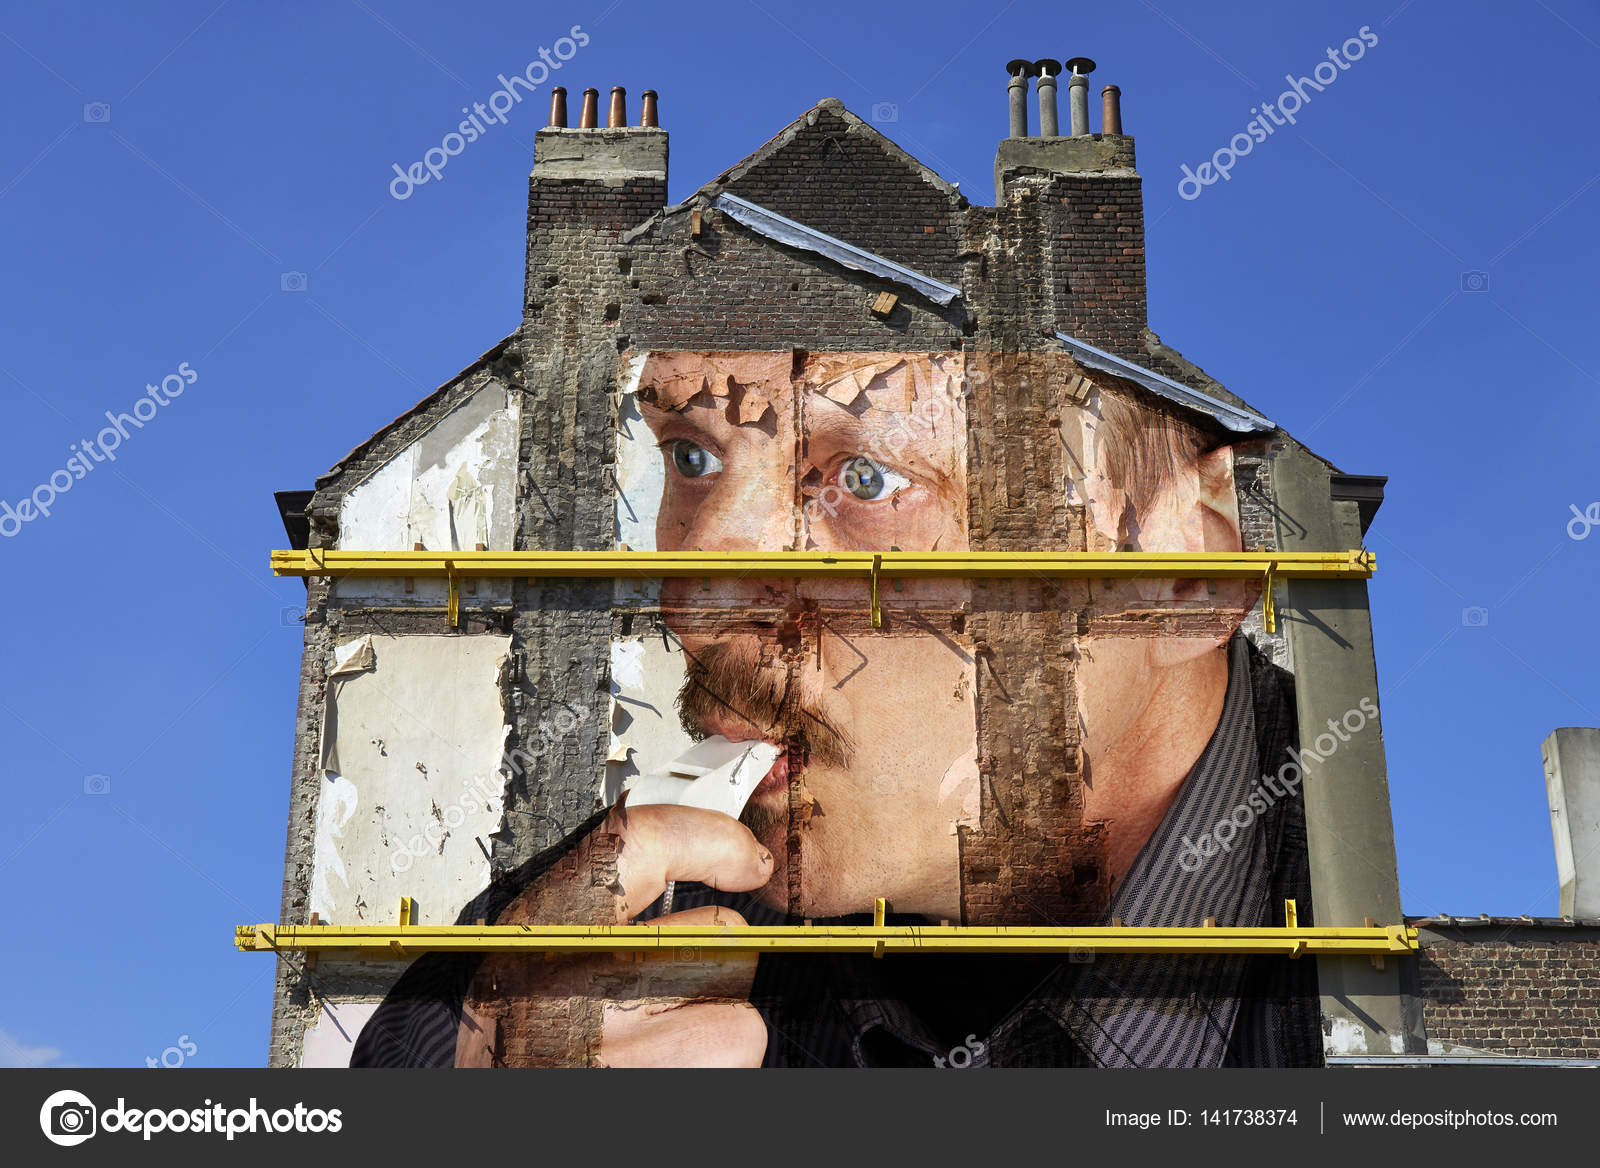 paint on walls from housing demolition site u2014 stock photo